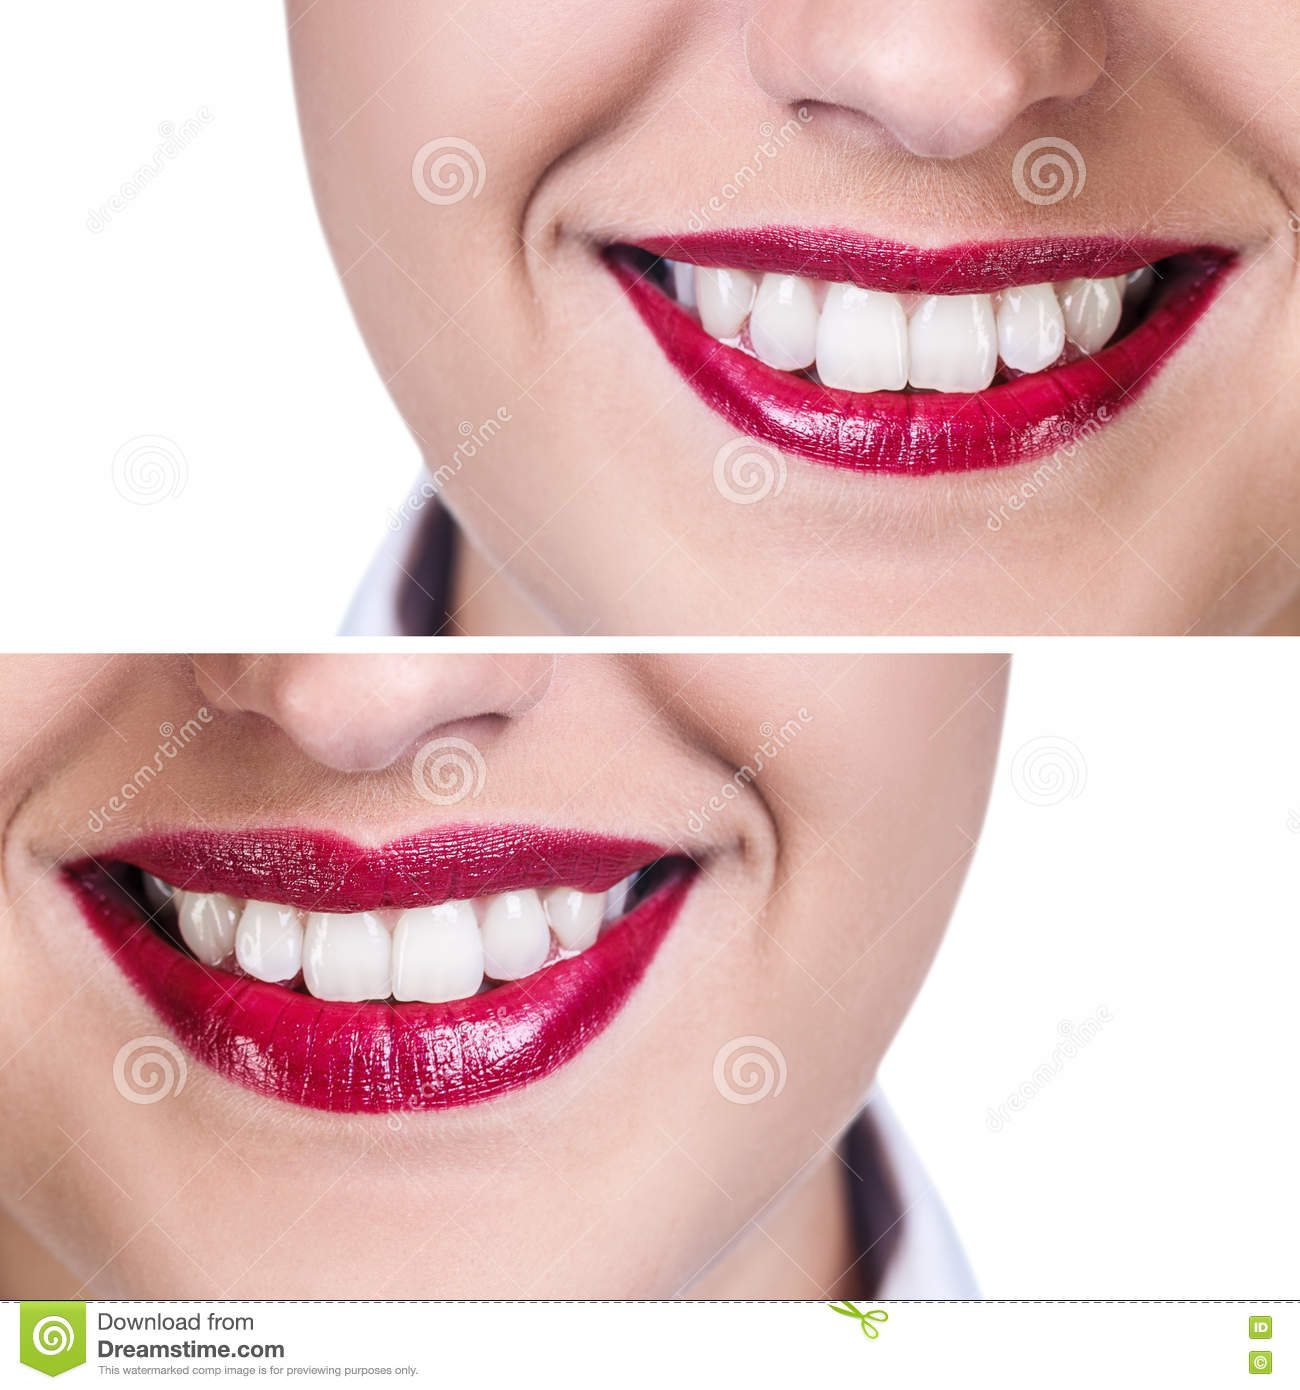 Lips Before And After Filler Injections Stock Image - Image